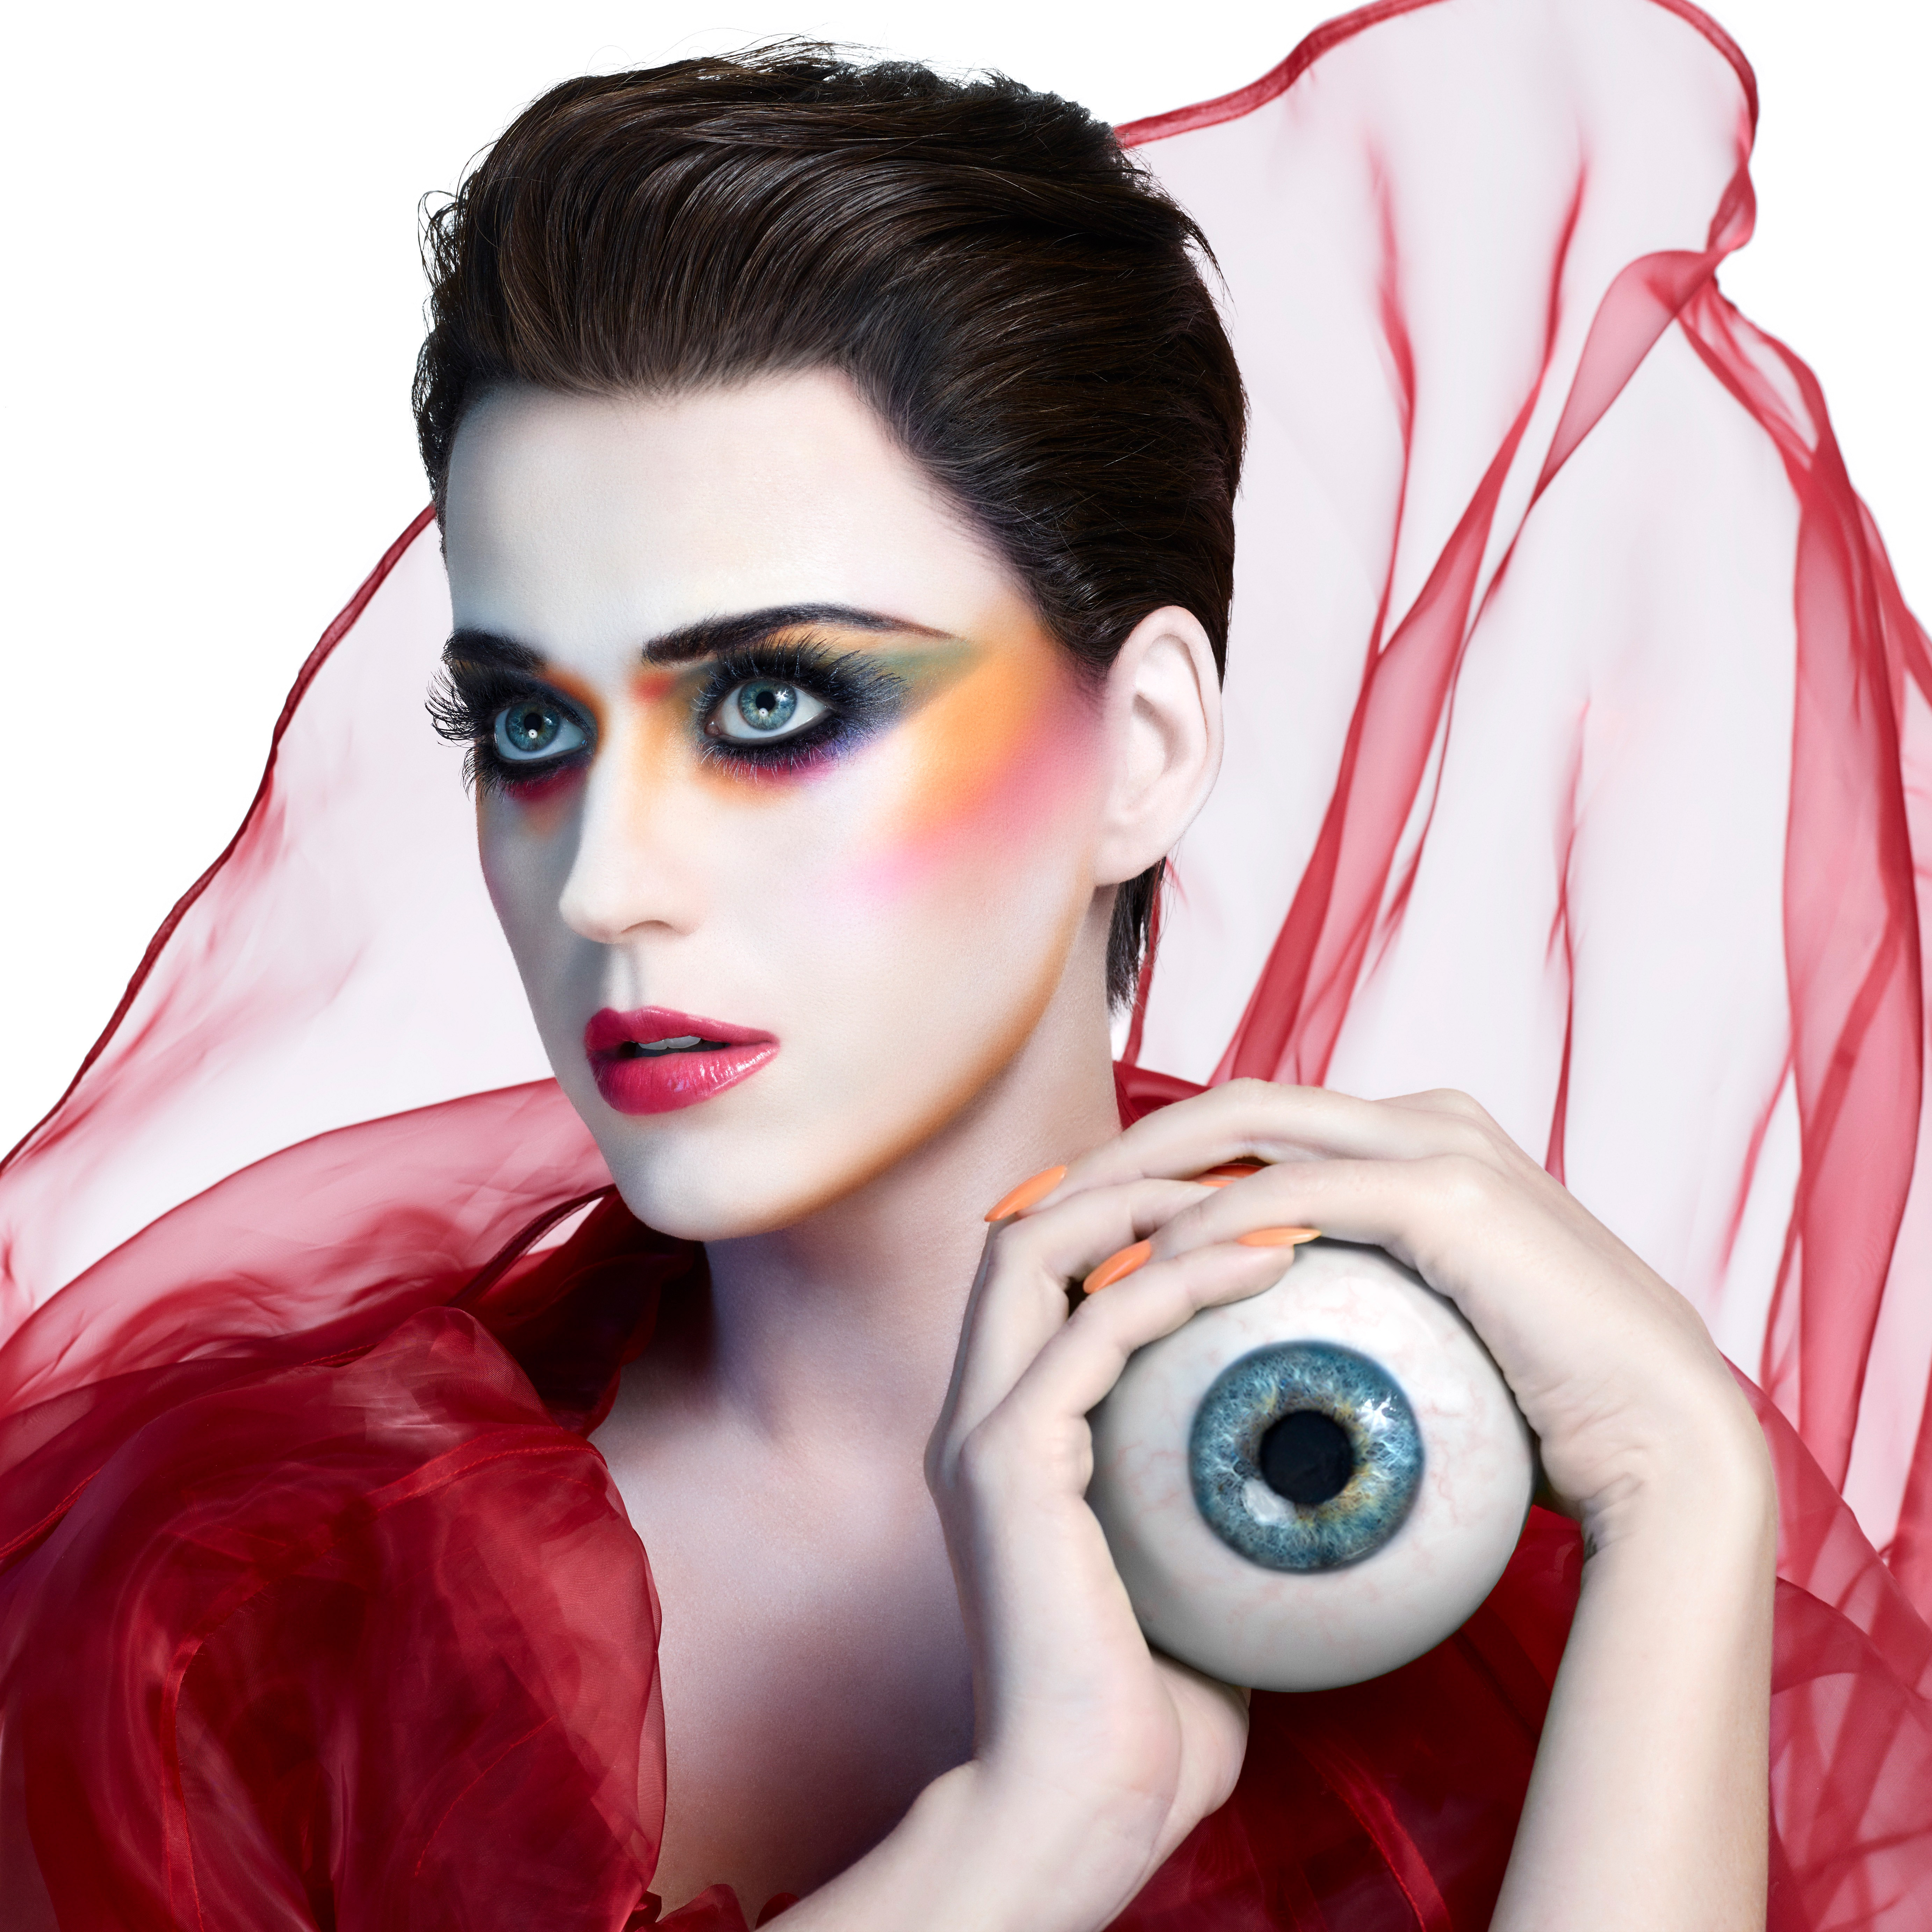 Katy Perry Witness Hd Music 4k Wallpapers Images Backgrounds